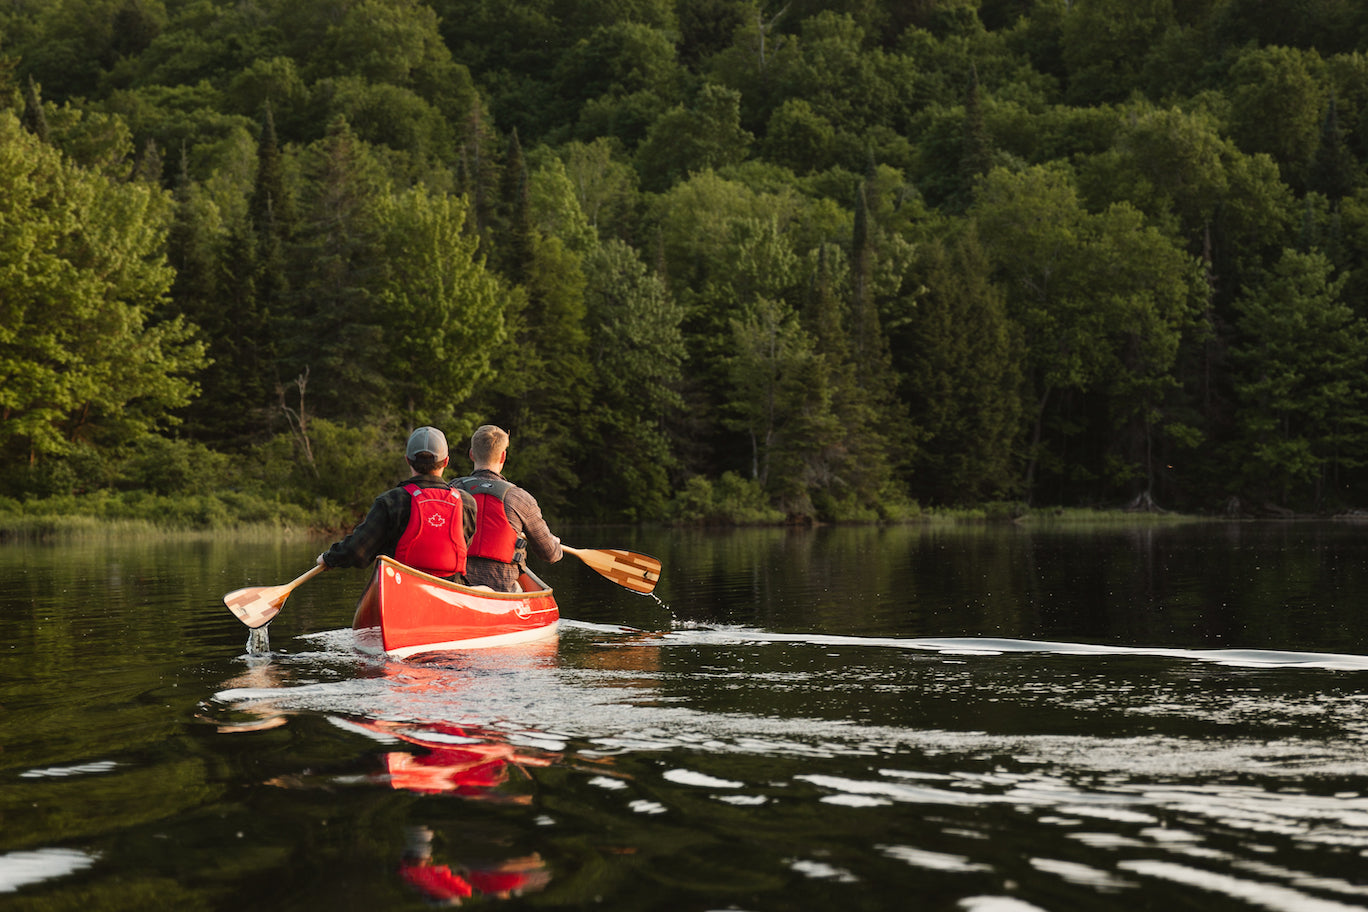 canoeists on the water